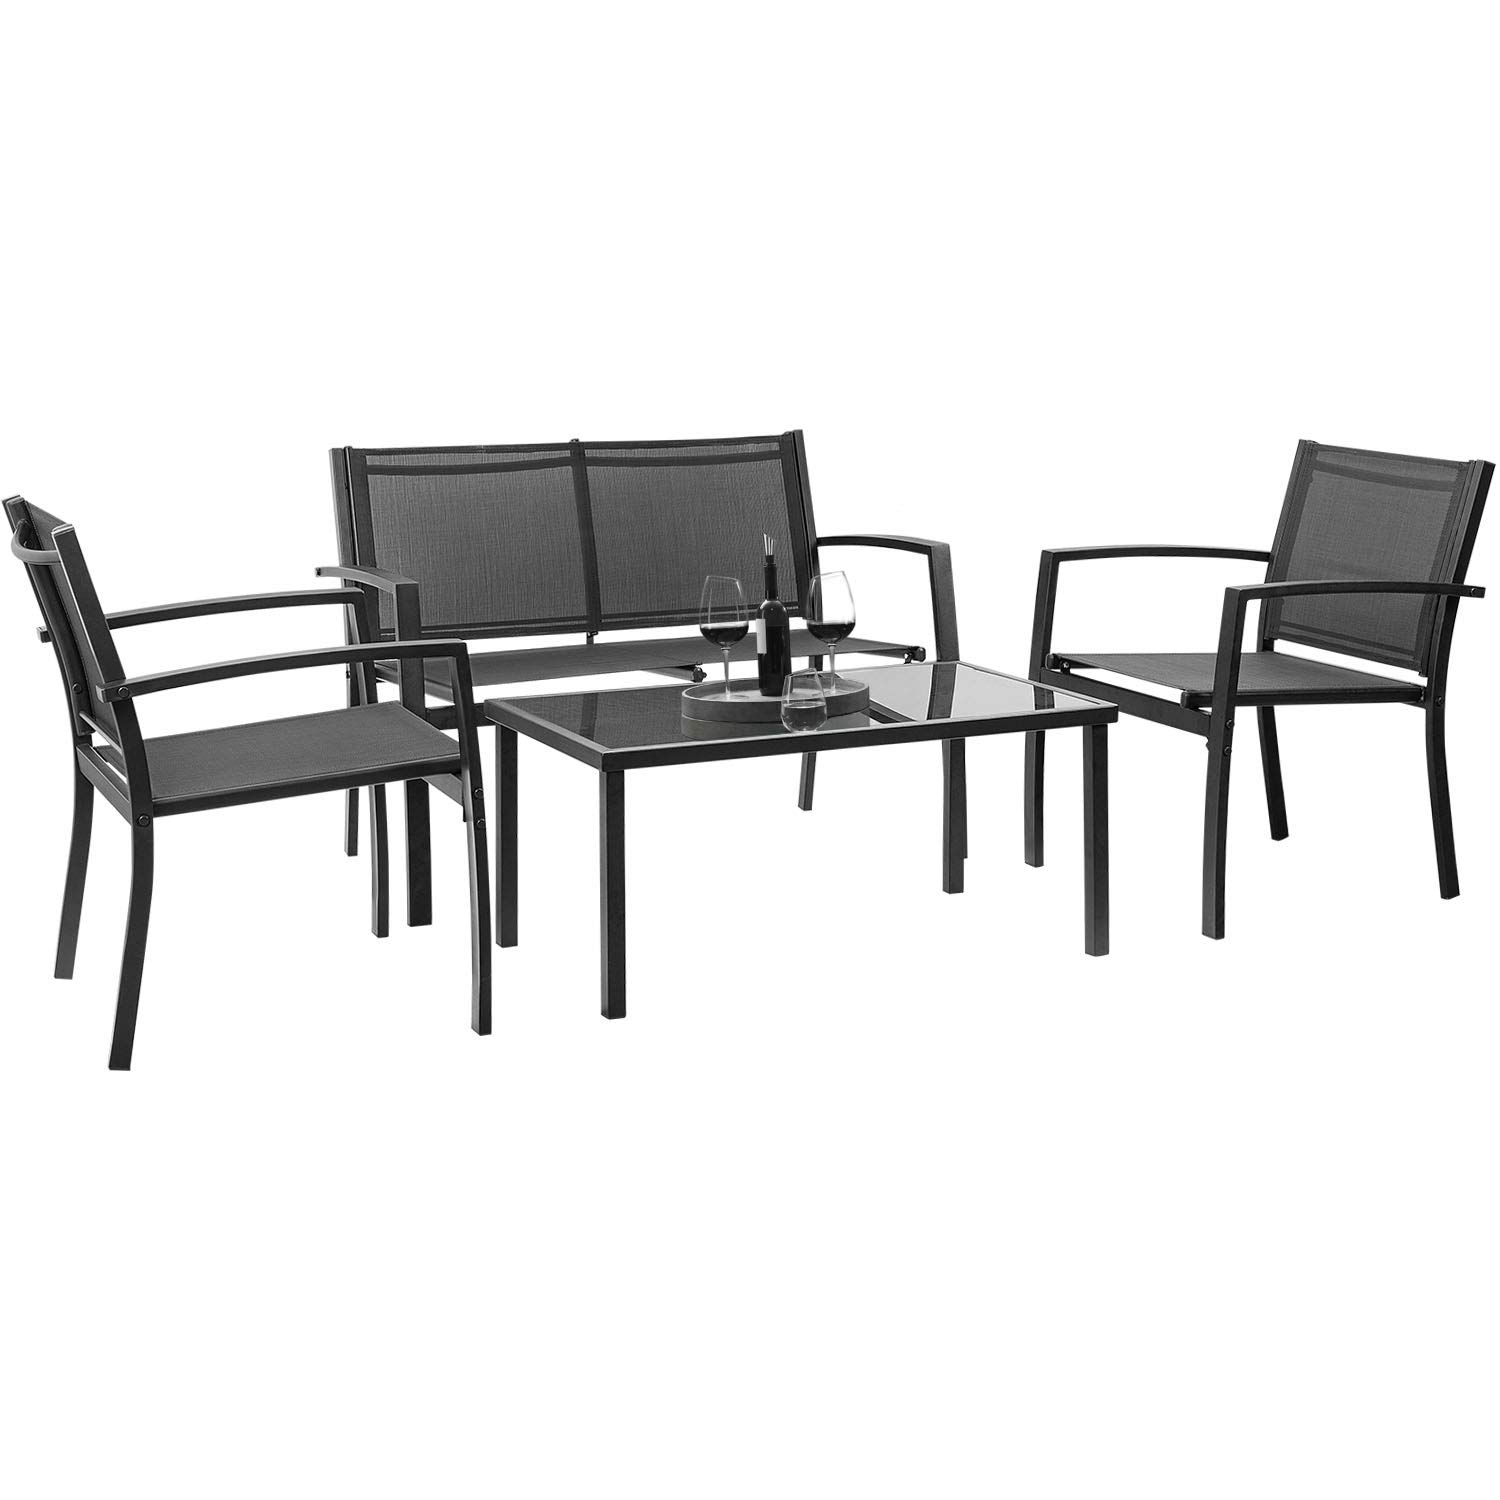 Devoko 4 Pieces Patio Furniture Set Outdoor Garden Patio Conversation Sets Poolside Lawn Chairs with Glass Coffee Table Porch Furniture (Black)